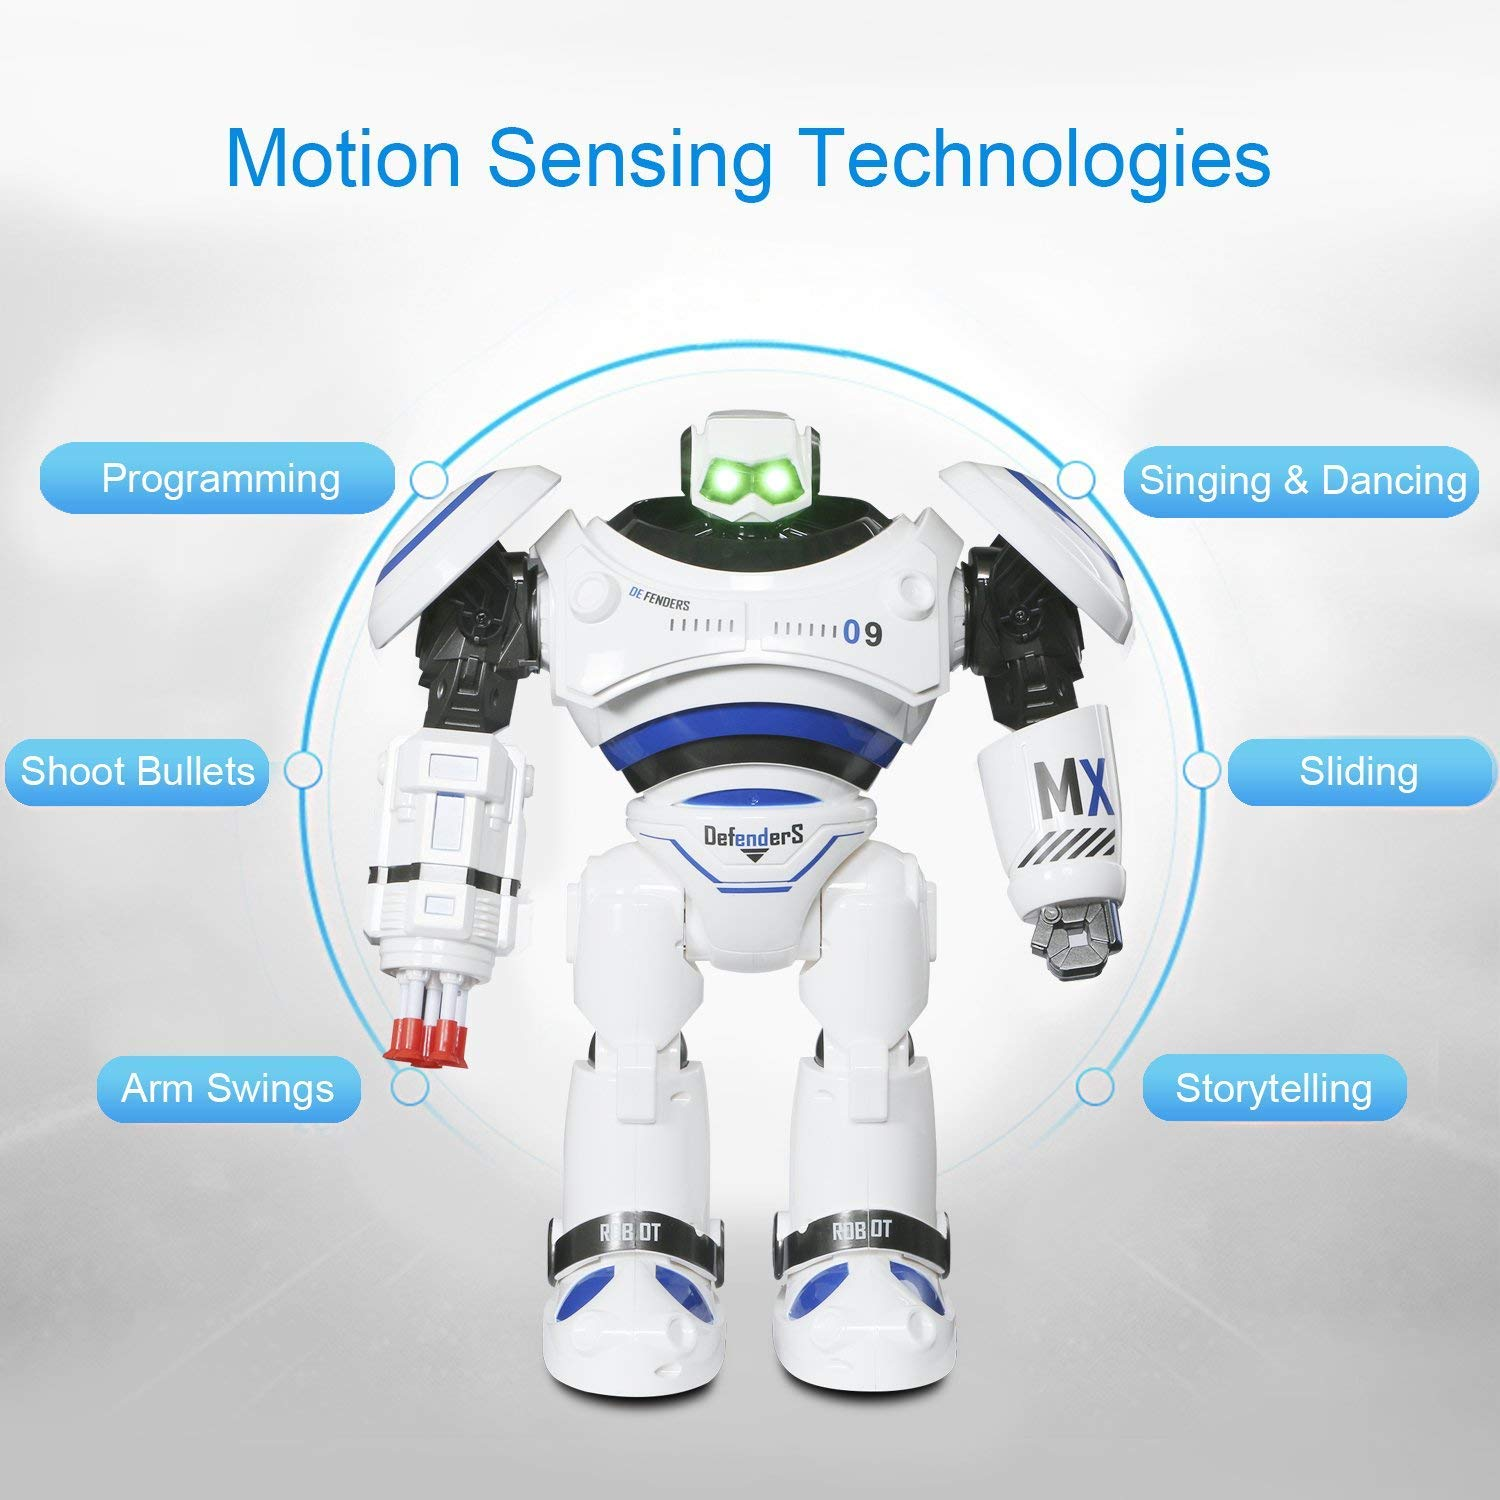 Large Robot Toy, Remote Control RC Combat Fighting Robot for Kids Birthday Present Gift, Dancing Shooting Infrared Sensing Robot for Kids Boy Girl by Toch (Image #3)